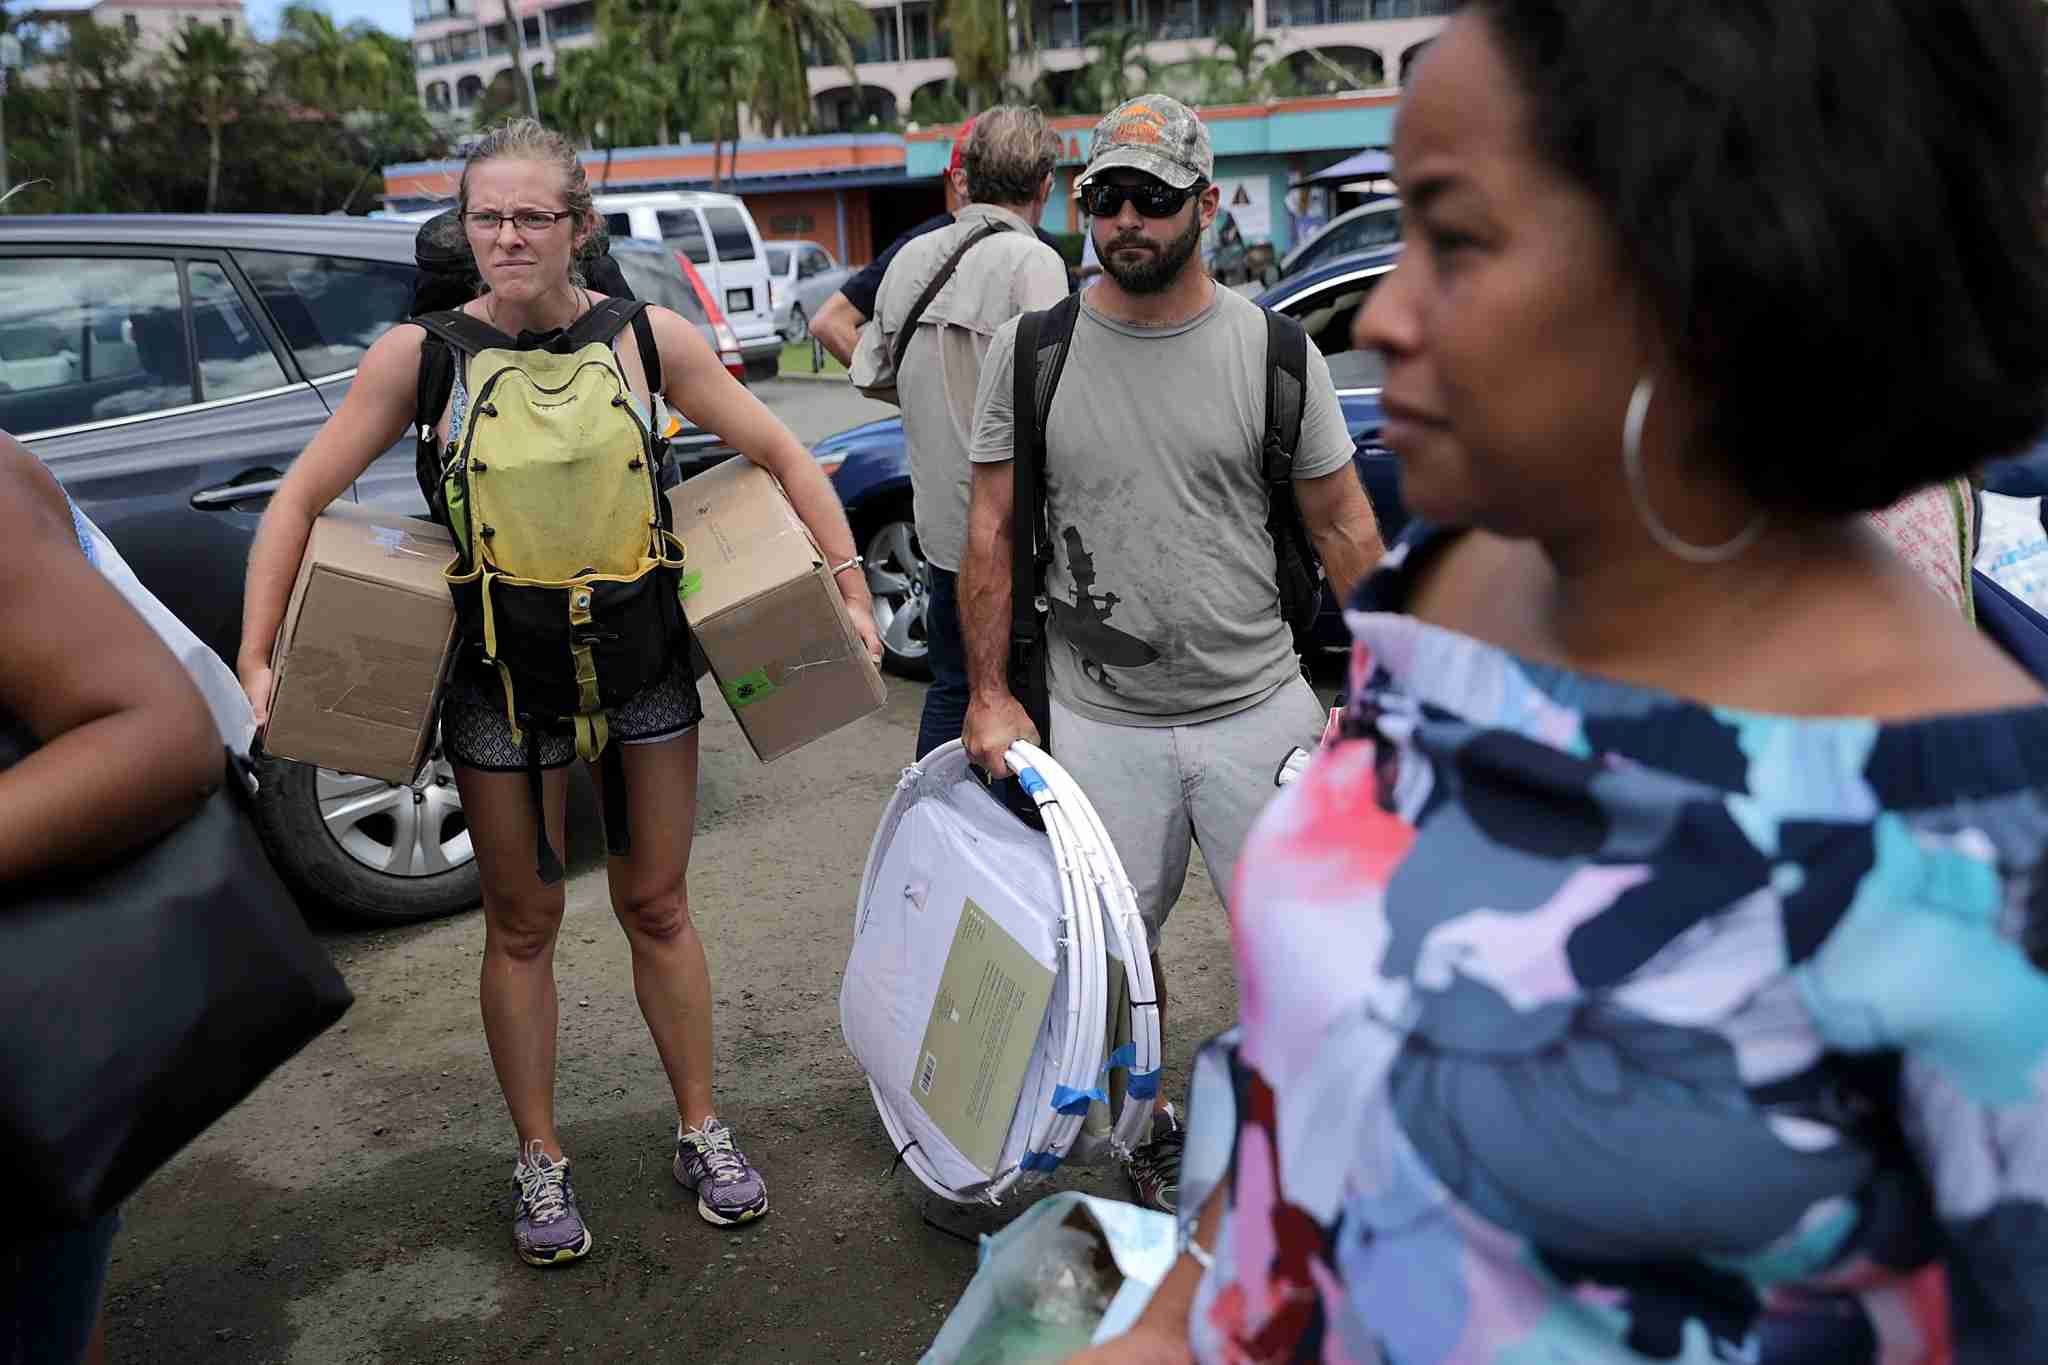 Passengers carry supplies onto a ferry taking them to St. Thomas on September 17, 2017 in Christiansted, St Croix, US Virgin Islands. (Photo by Chip Somodevilla/Getty Images)